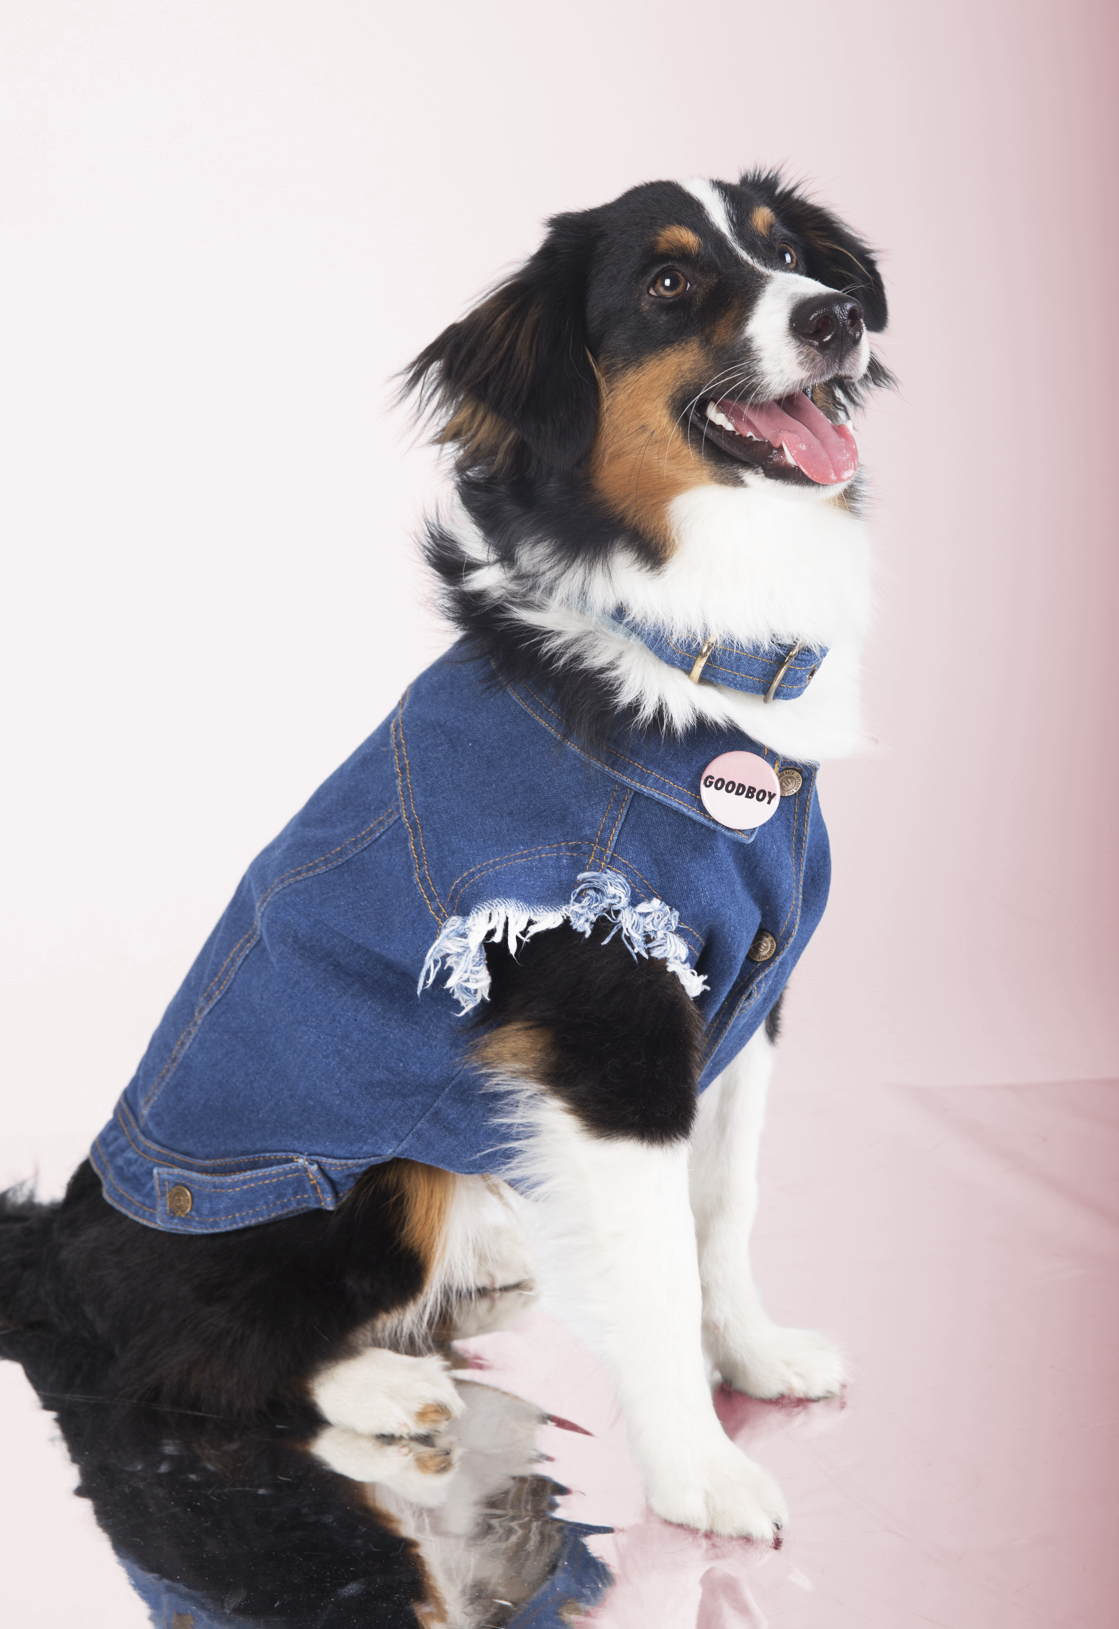 Murphy's Favourite Things - Some of Murphy's hobbies include watching the game (football and hockey, obvs) with the boys, grooving along to Miley Cyrus, and hitting the trails.His favourite new outfit?  Paws down, his Raw Denim Vest.